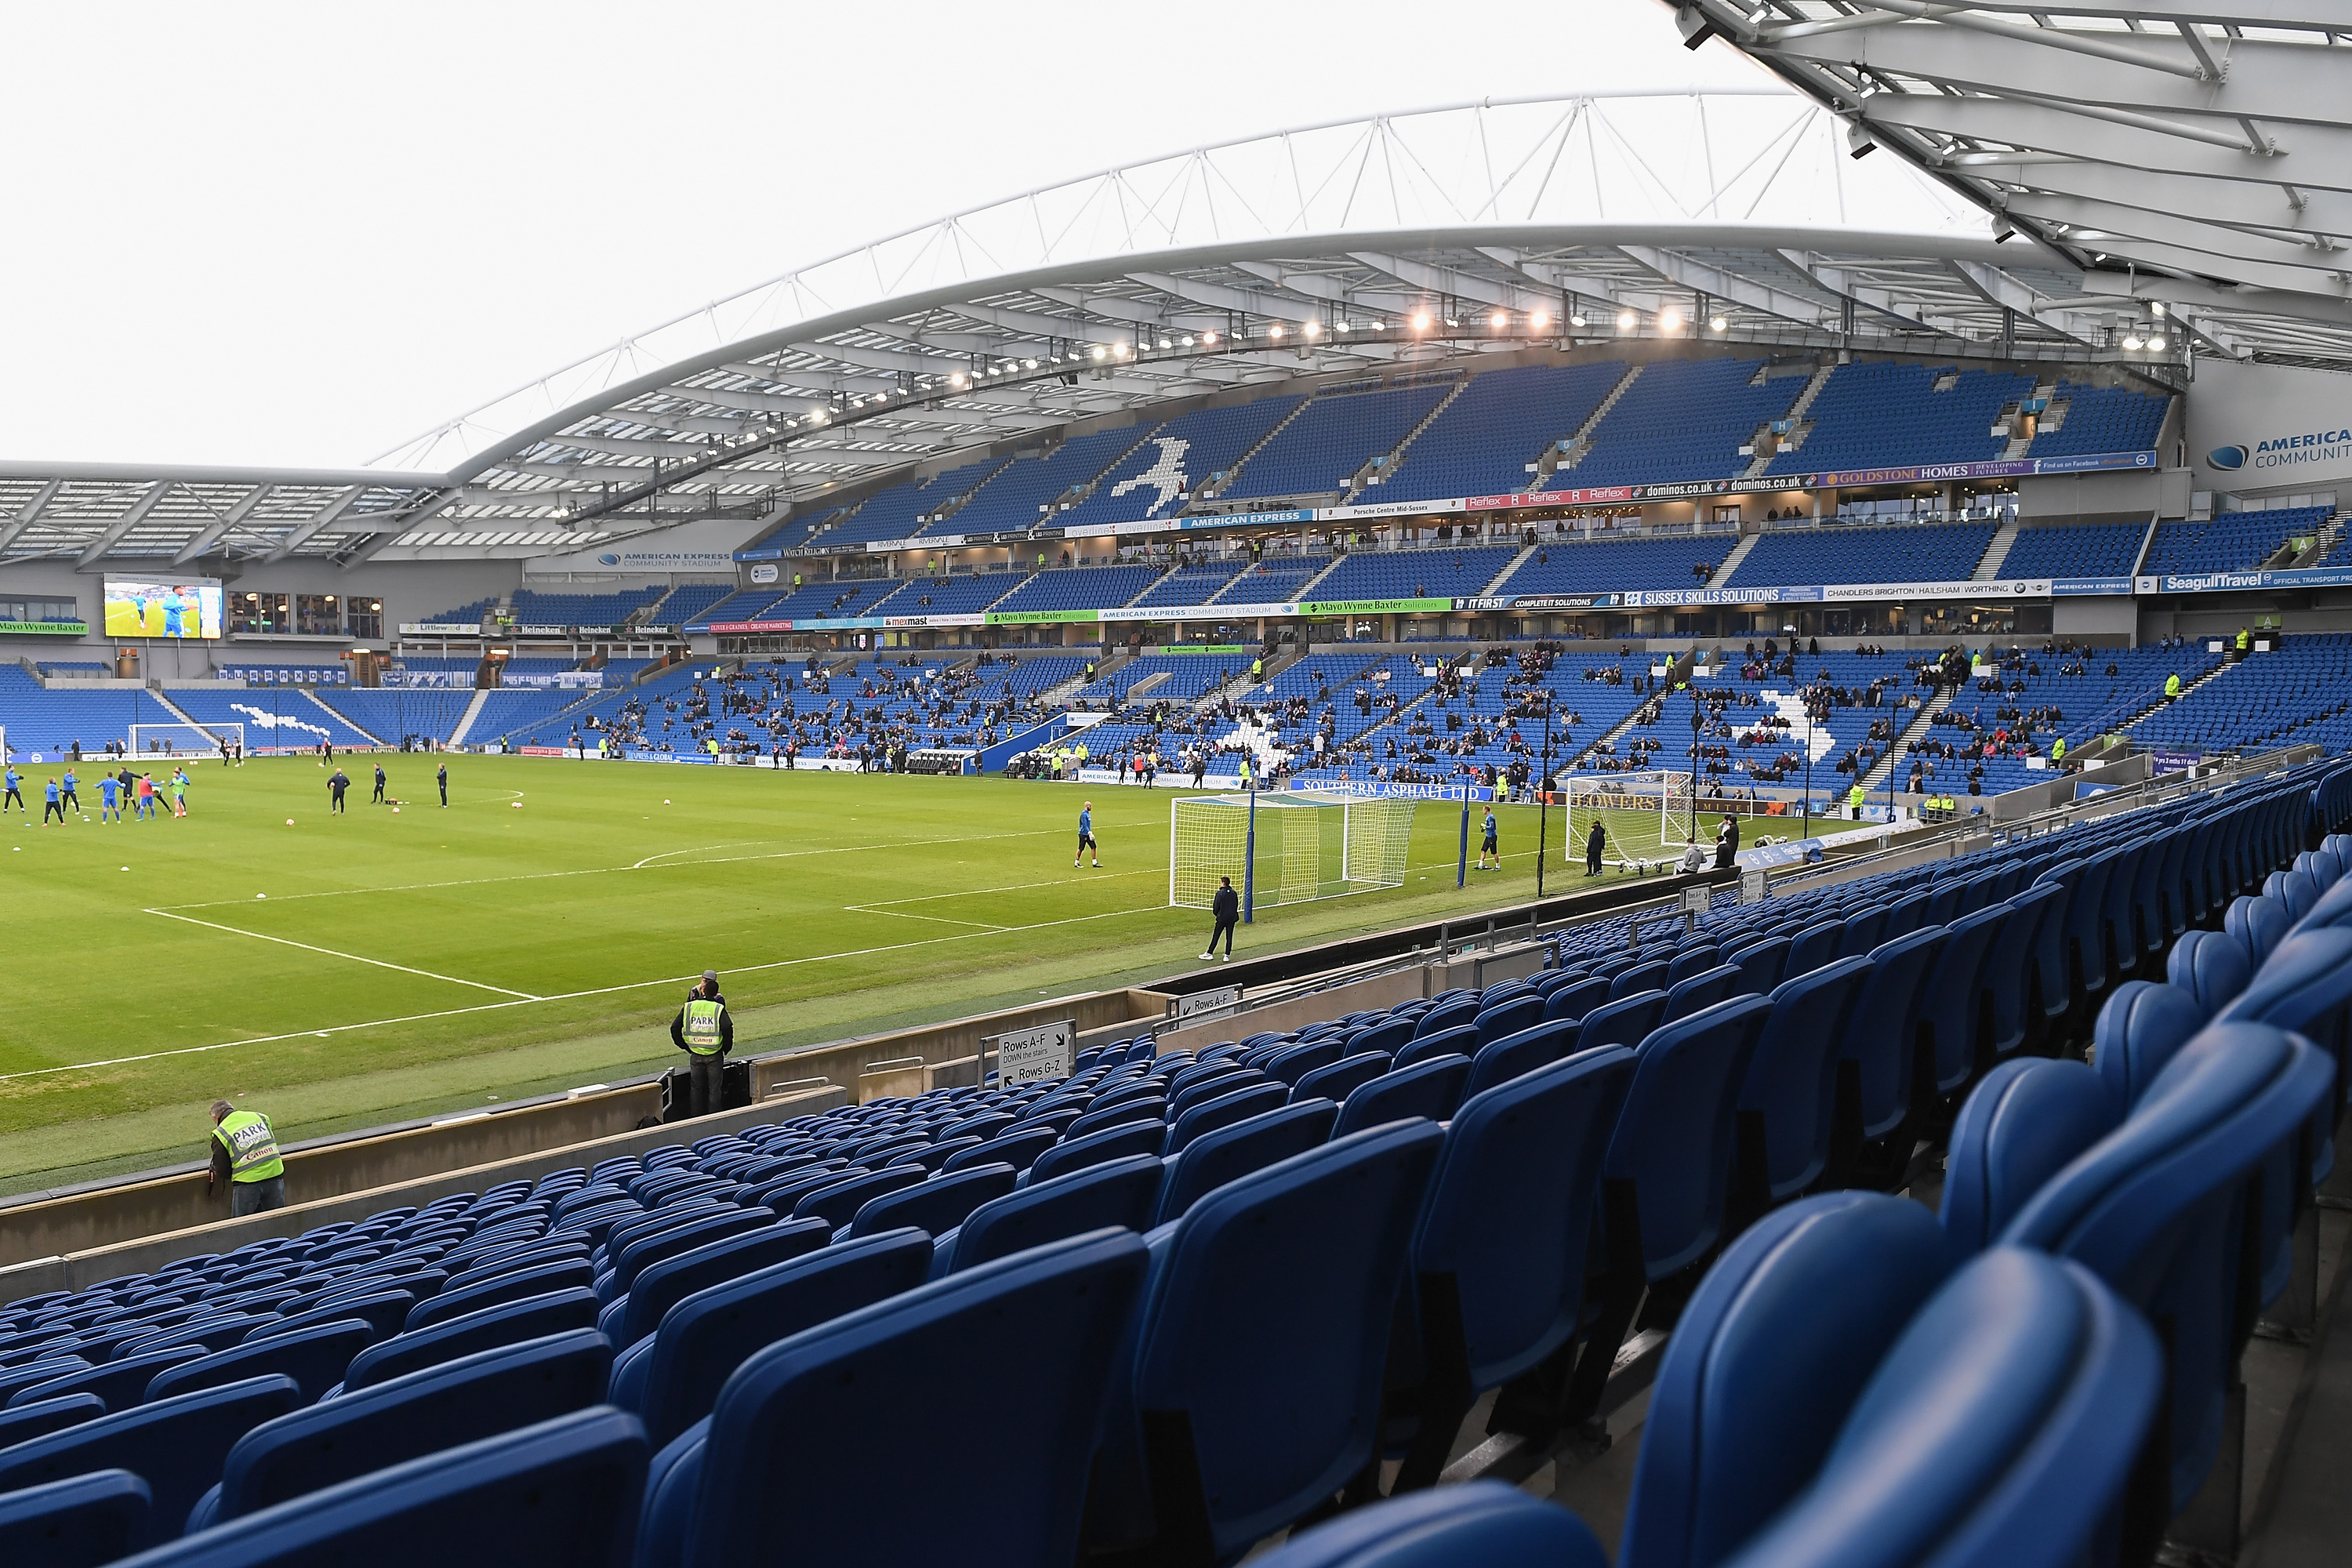 BRIGHTON, ENGLAND - JANUARY 07: A crowd of only 10,000 is expected for The Emirates FA Cup Third Round match between Brighton & Hove Albion and Milton Keynes Dons at Amex Stadium on January 7, 2017 in Brighton, England. (Photo by Mike Hewitt/Getty Images)